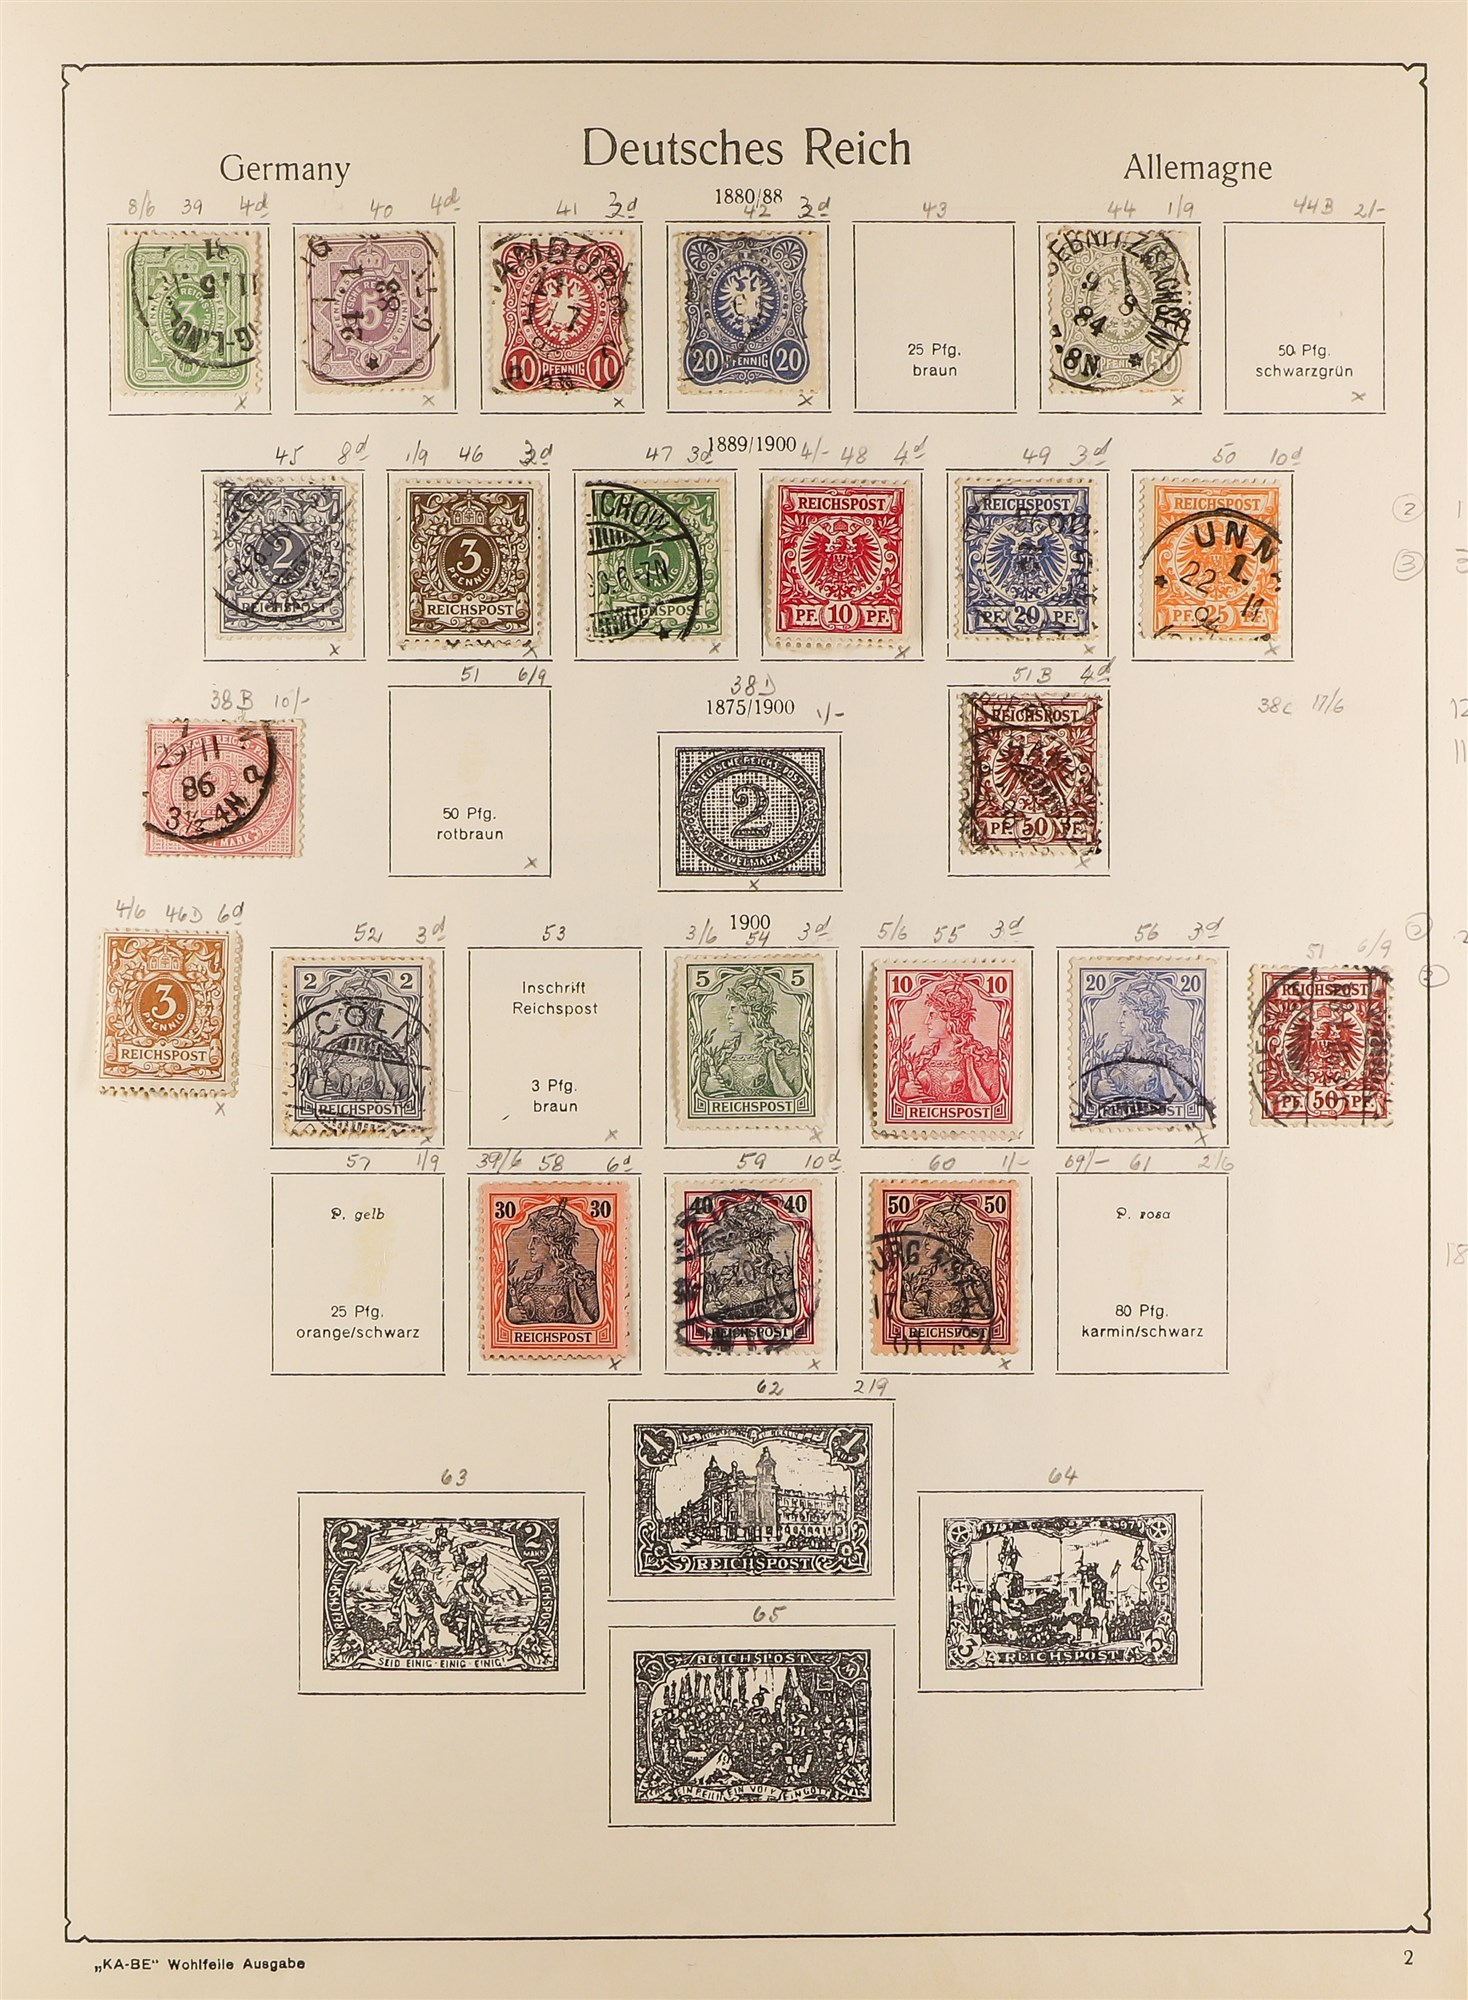 COLLECTIONS & ACCUMULATIONS FRANCE, GERMANY, SWITZERLAND IN TWO LARGE KA-BE ALBUMS with useful - Image 8 of 12